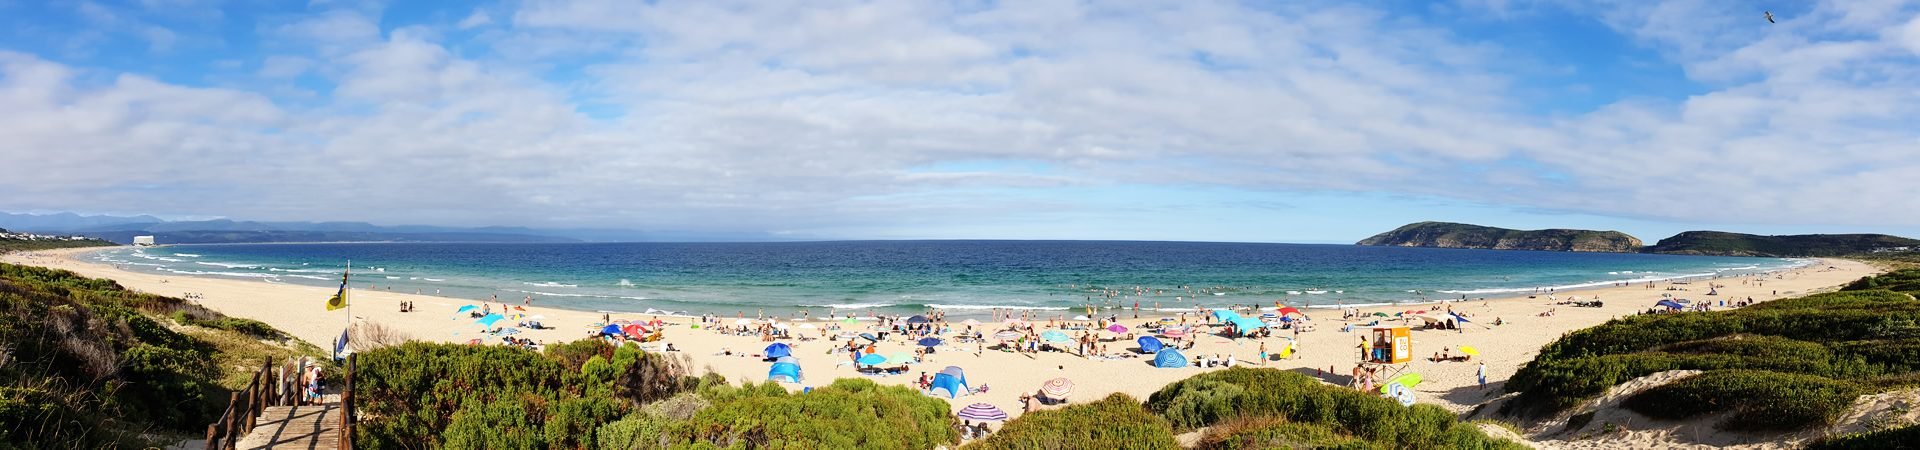 Robberg Sanctuary Beach